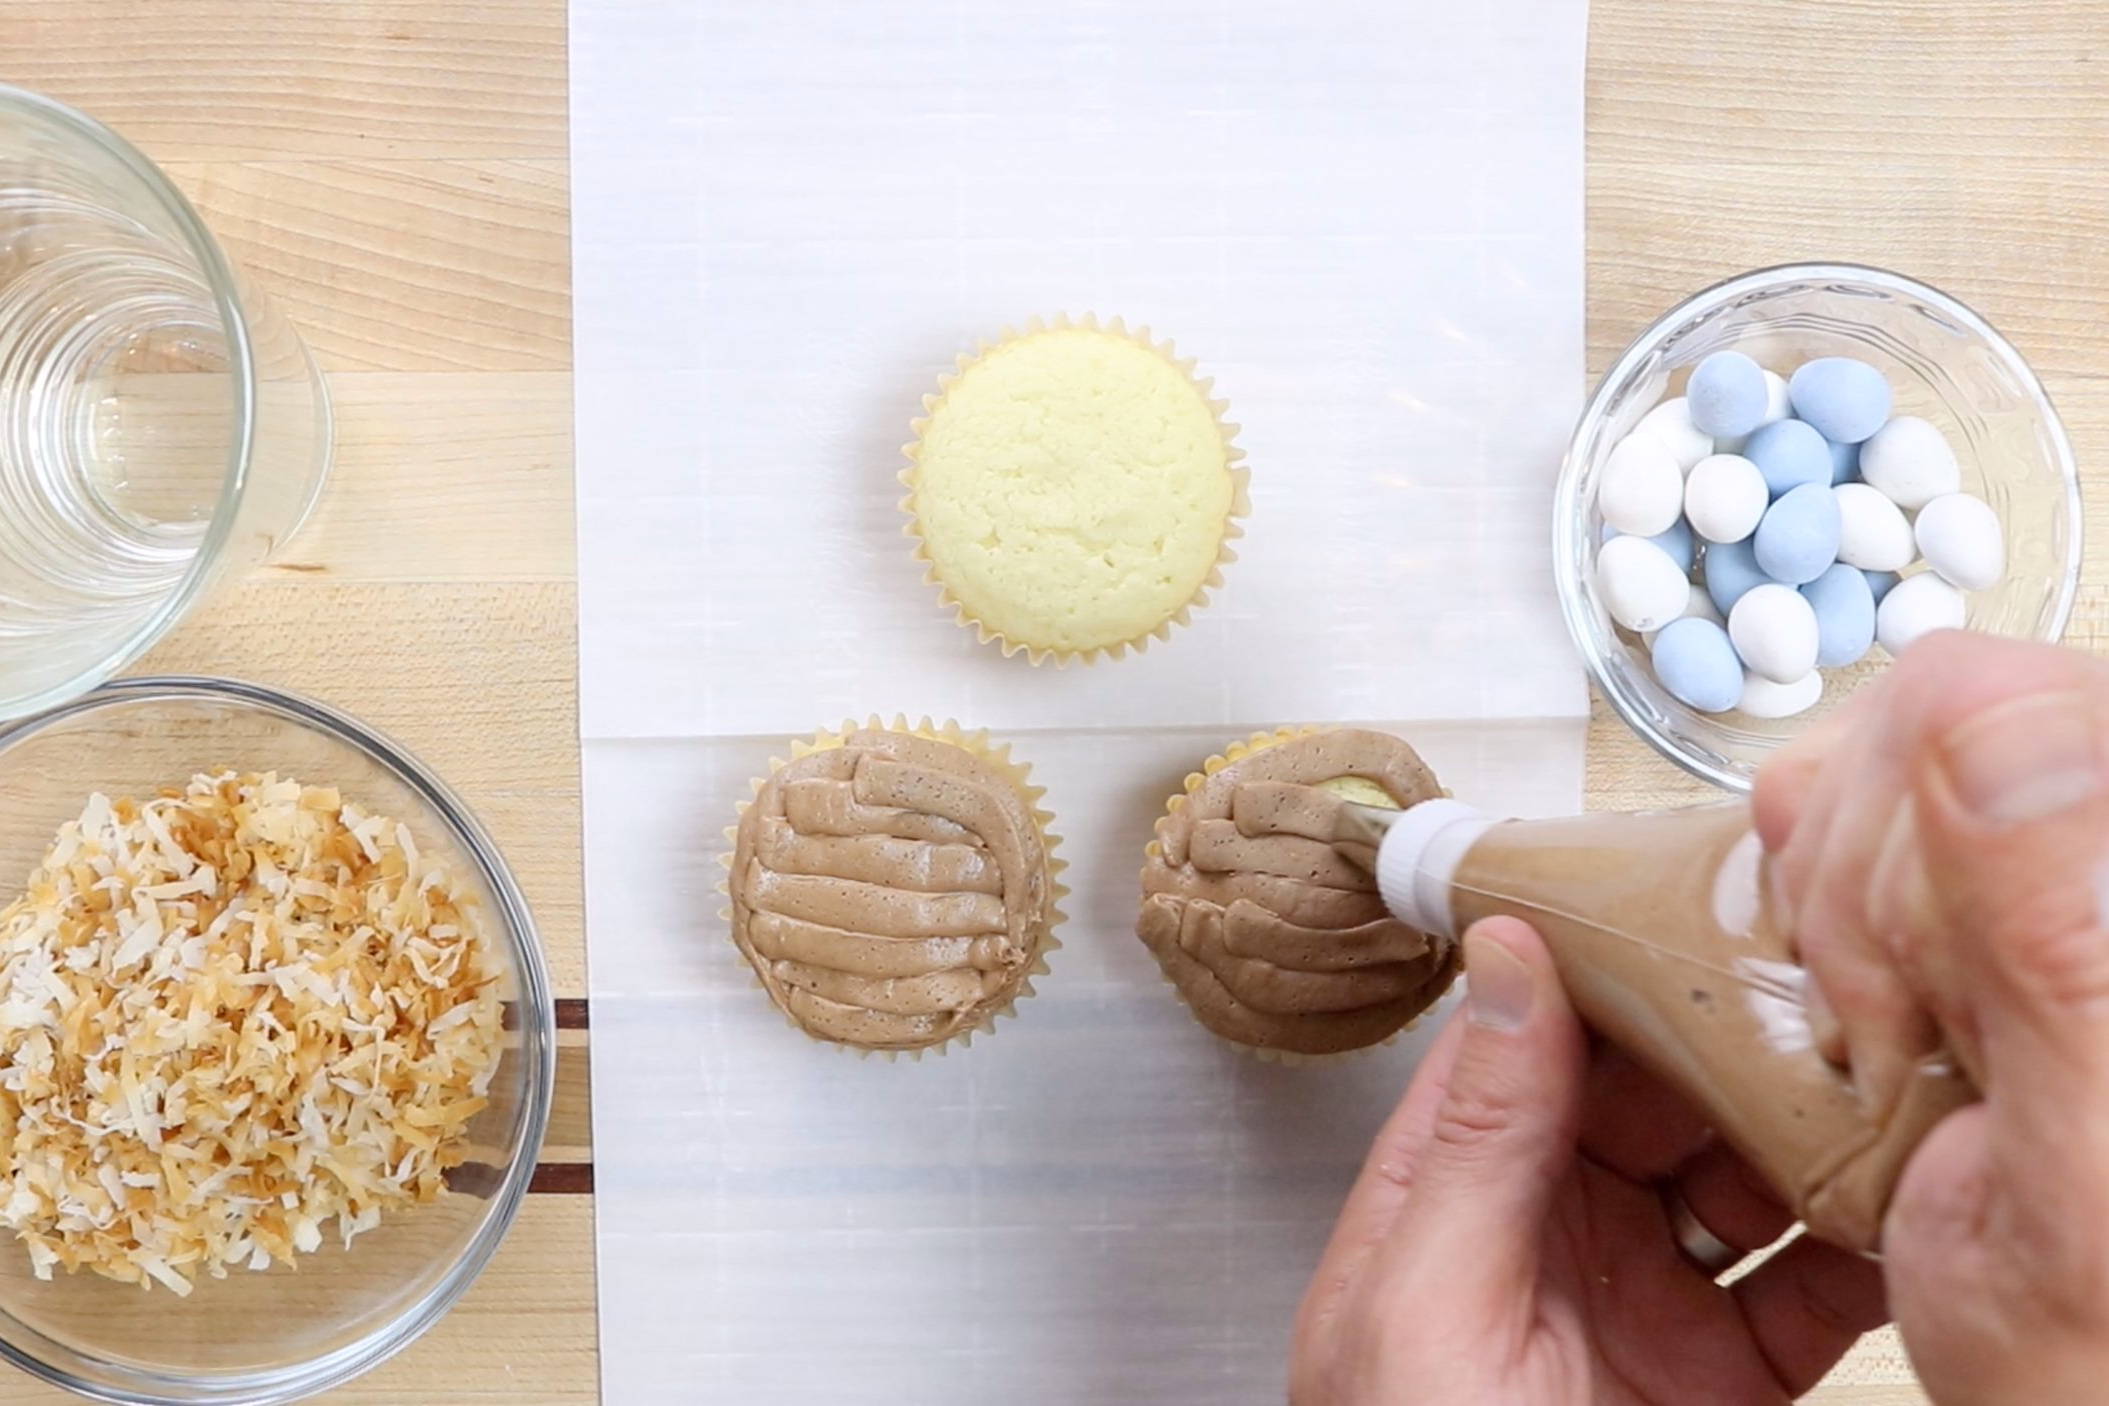 3. Using a knife or an icing bag, frost cooled cupcakes with chocolate buttercream frosting. -